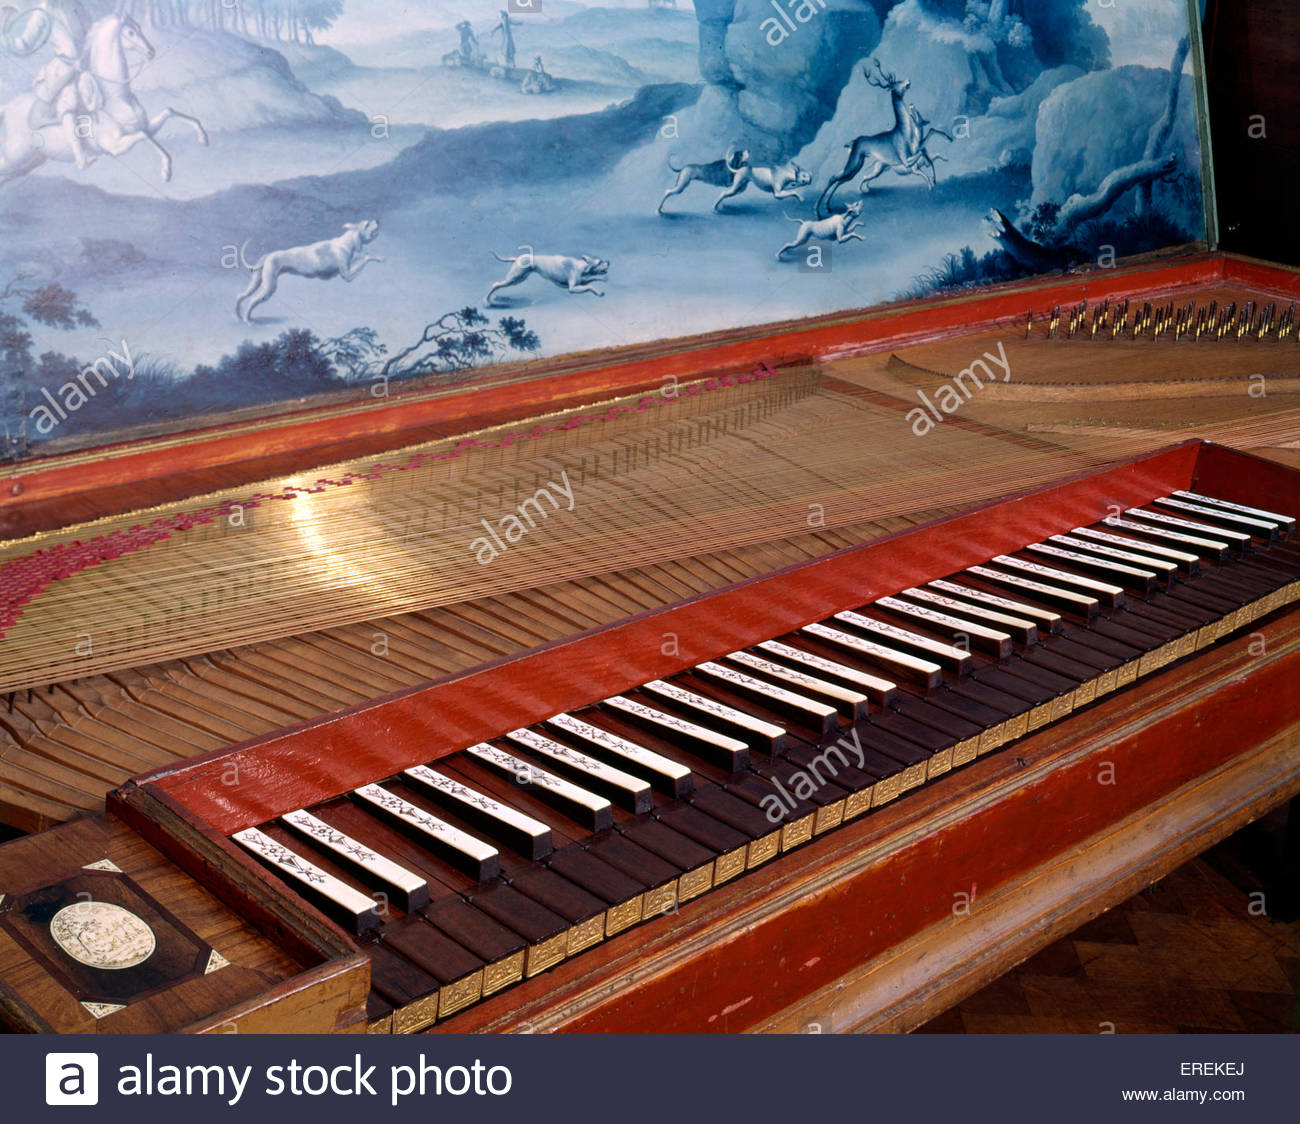 Clavichord  made by Barthold Fritz,  Germany, 1751 (1697-1766). (V&A Museum, London). - Stock Image